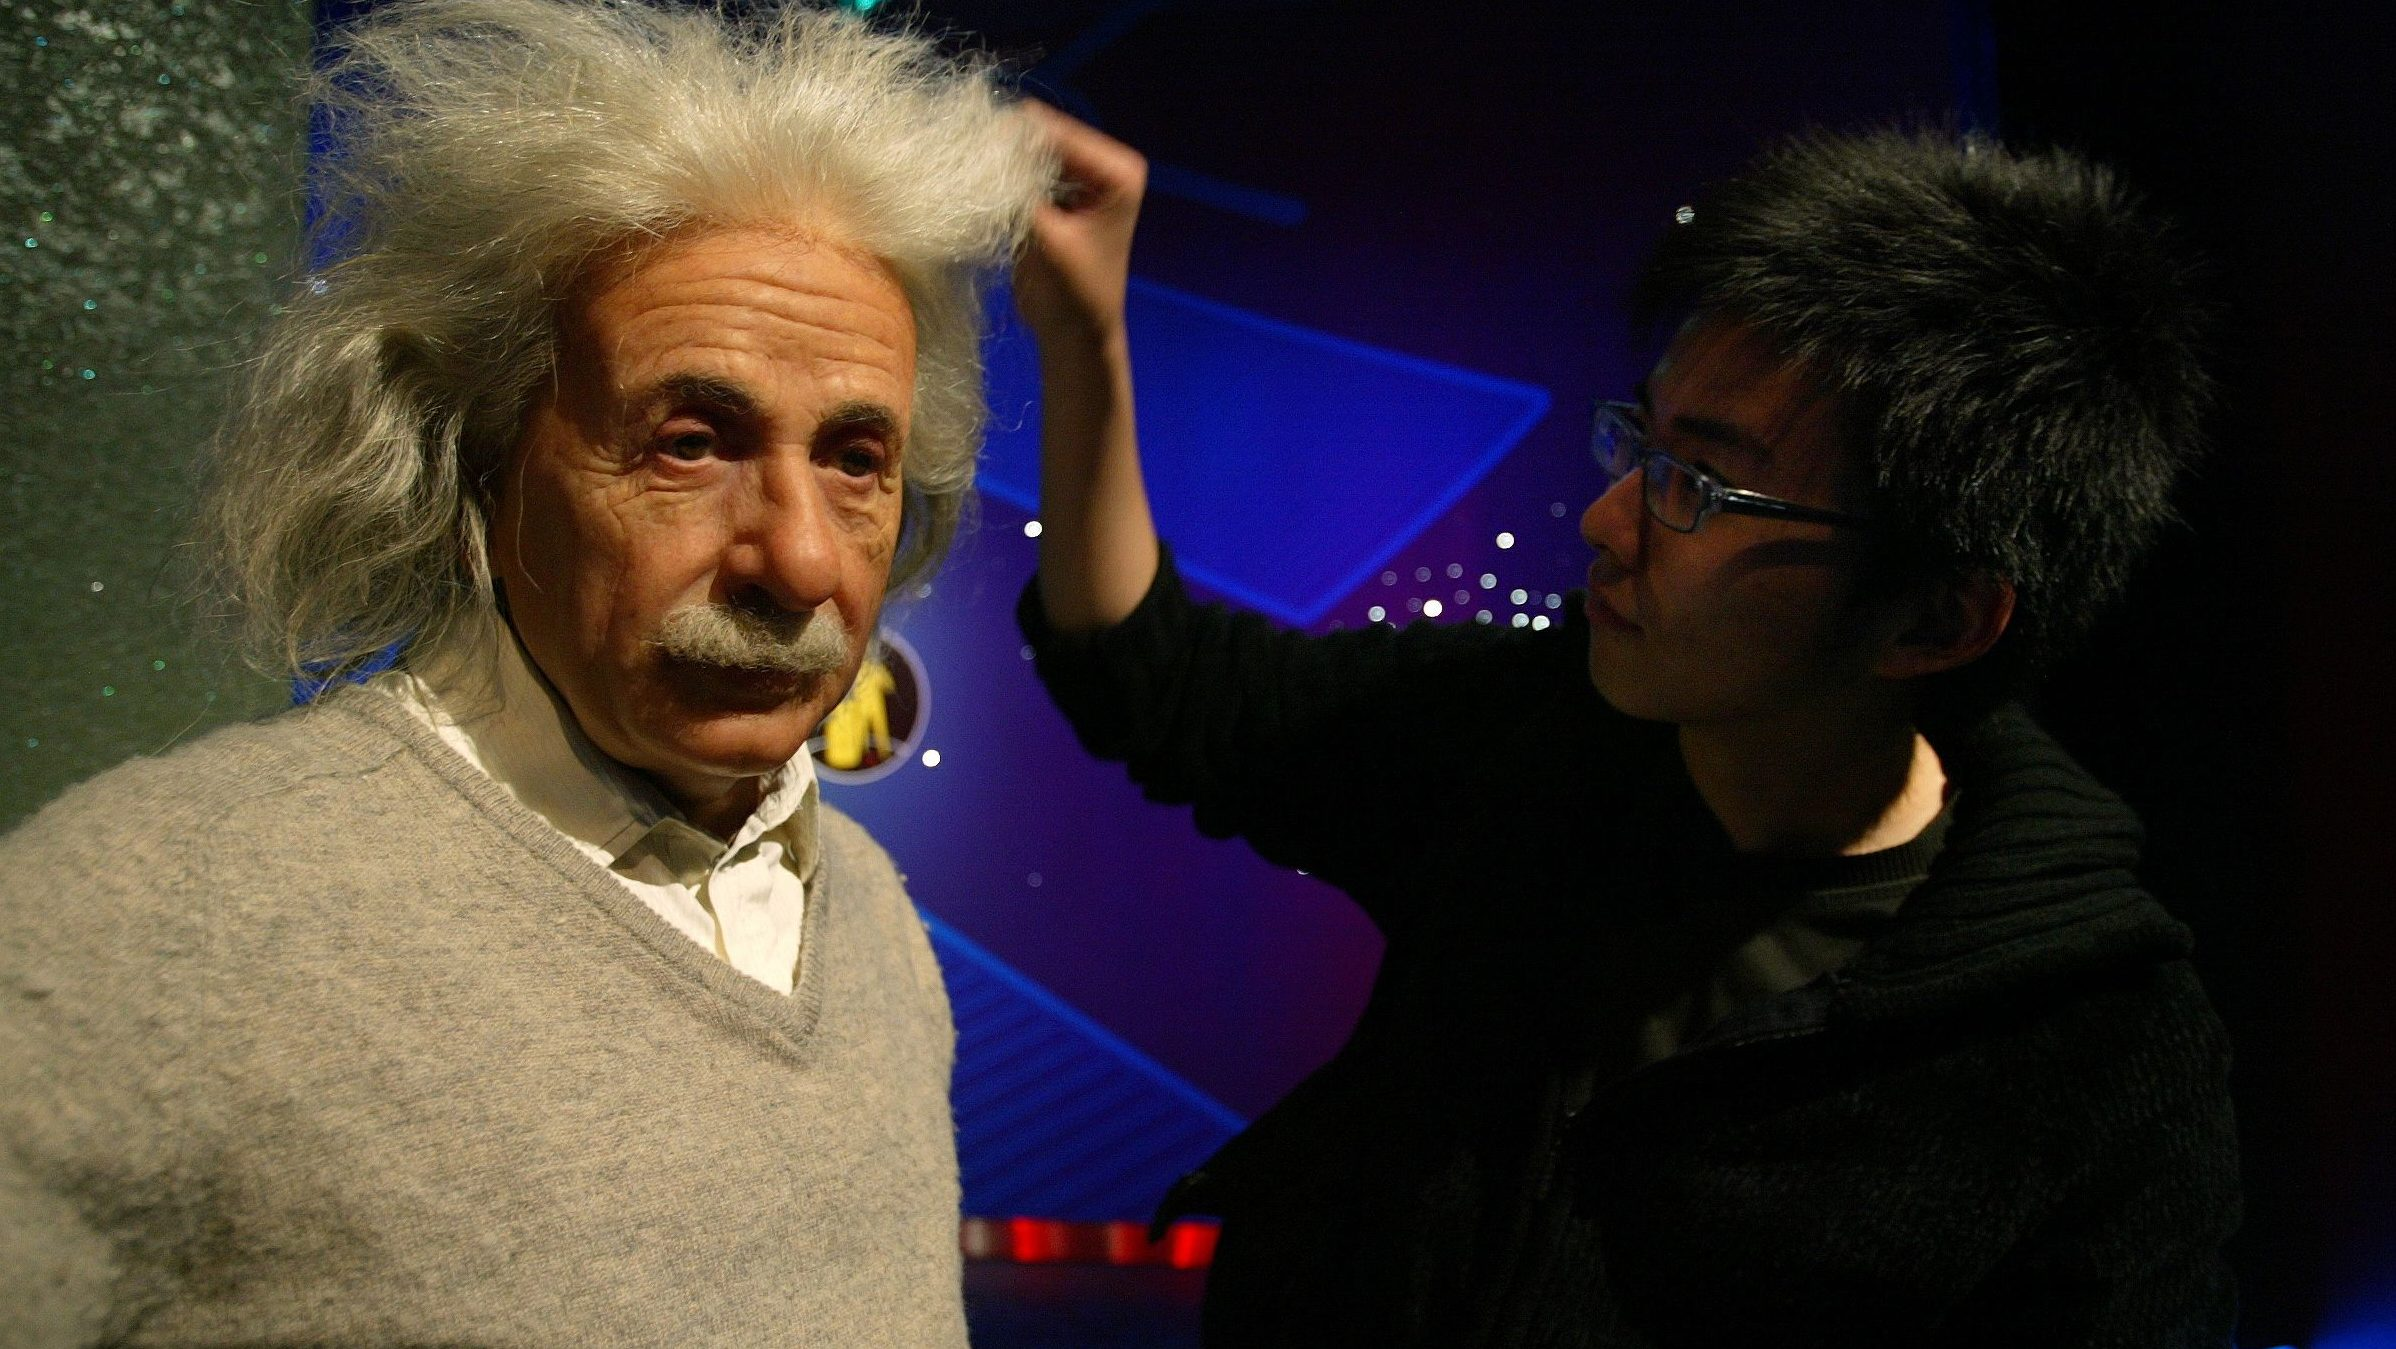 An artist adjust the hair on a wax model of mathematician Albert Einstein at the Madame Tussaud's Wax Museum in Shanghai April 28, 2006. The museum is due to open on May 1, 2006 and will display more than 70 wax models, among them representations of a number of Chinese politicians and celebrities. - PBEAHUNODEN